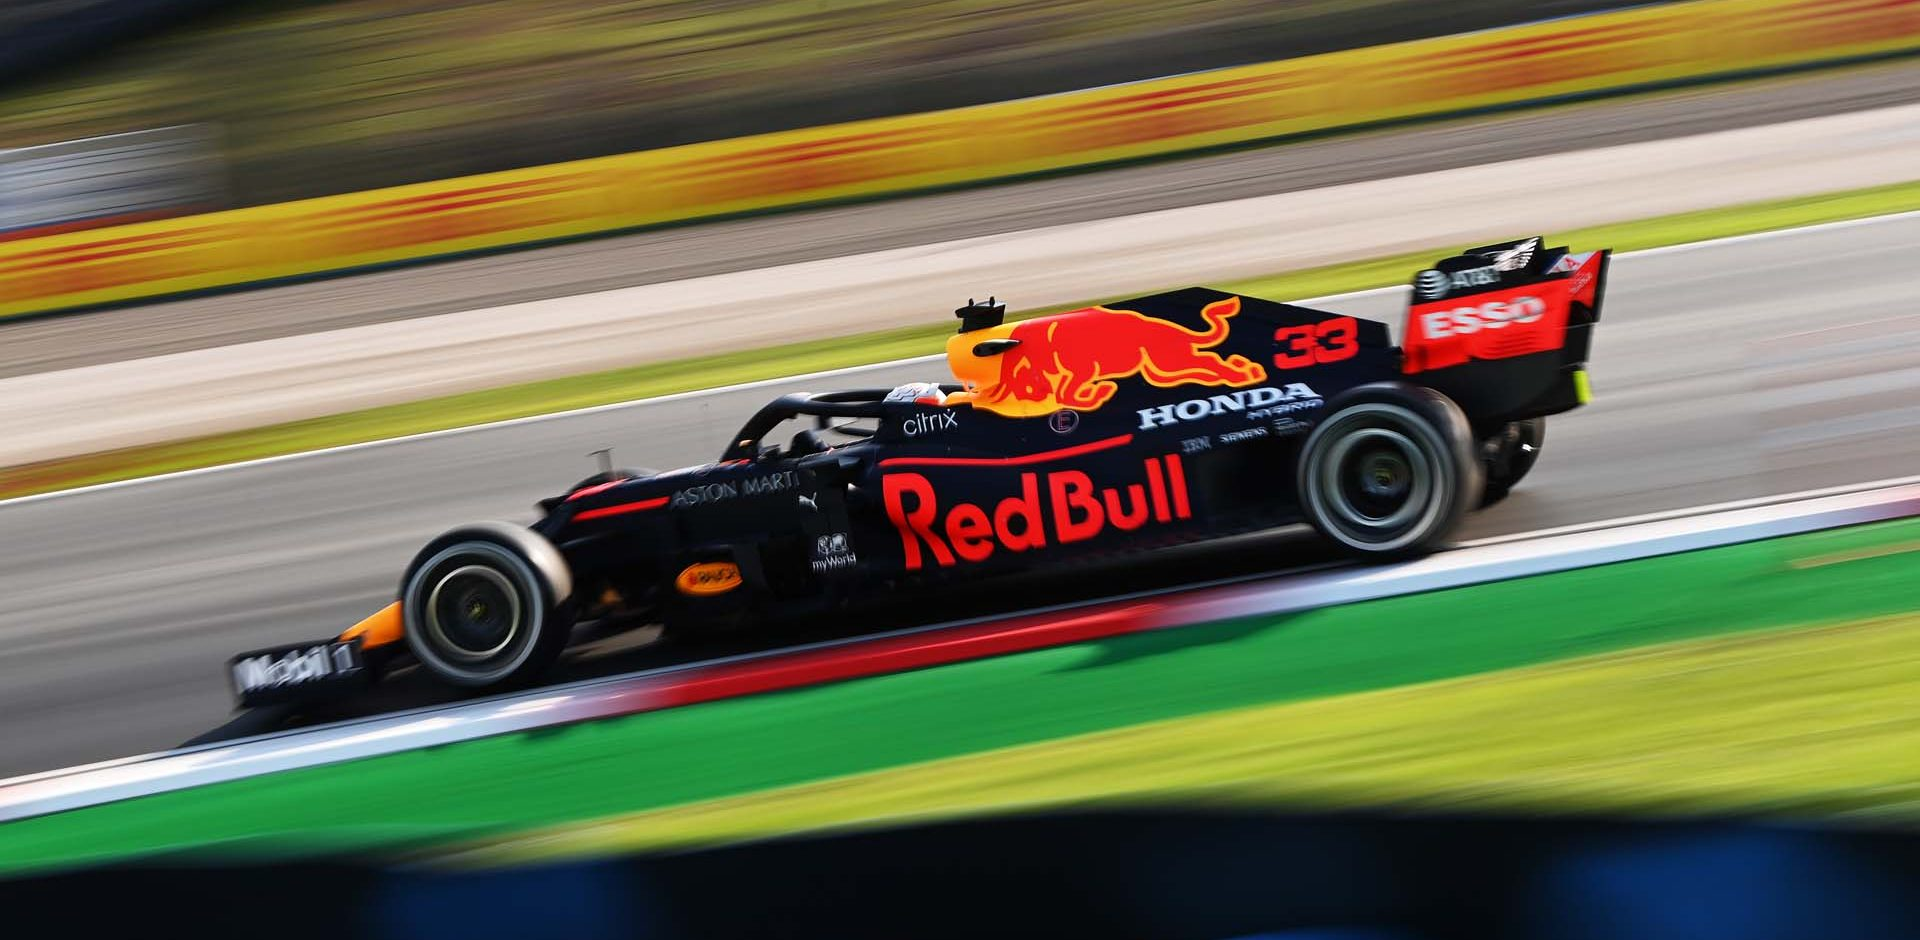 ISTANBUL, TURKEY - NOVEMBER 13: Max Verstappen of the Netherlands driving the (33) Aston Martin Red Bull Racing RB16 on track during practice ahead of the F1 Grand Prix of Turkey at Intercity Istanbul Park on November 13, 2020 in Istanbul, Turkey. (Photo by Ozan Kose-Pool/Getty Images)